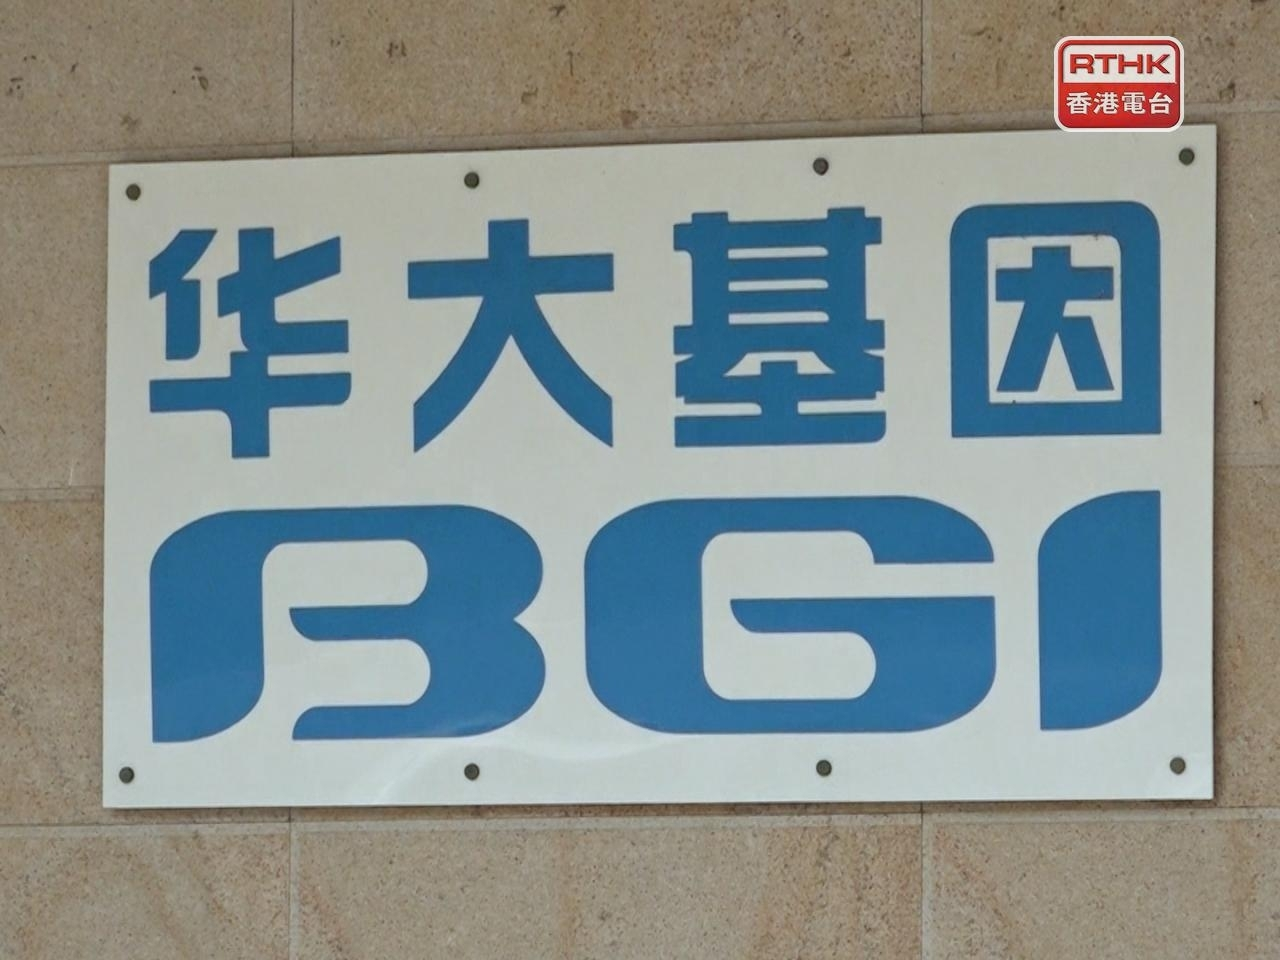 BGI has again offered those affected by the contaminated samples a full apology. Photo: RTHK